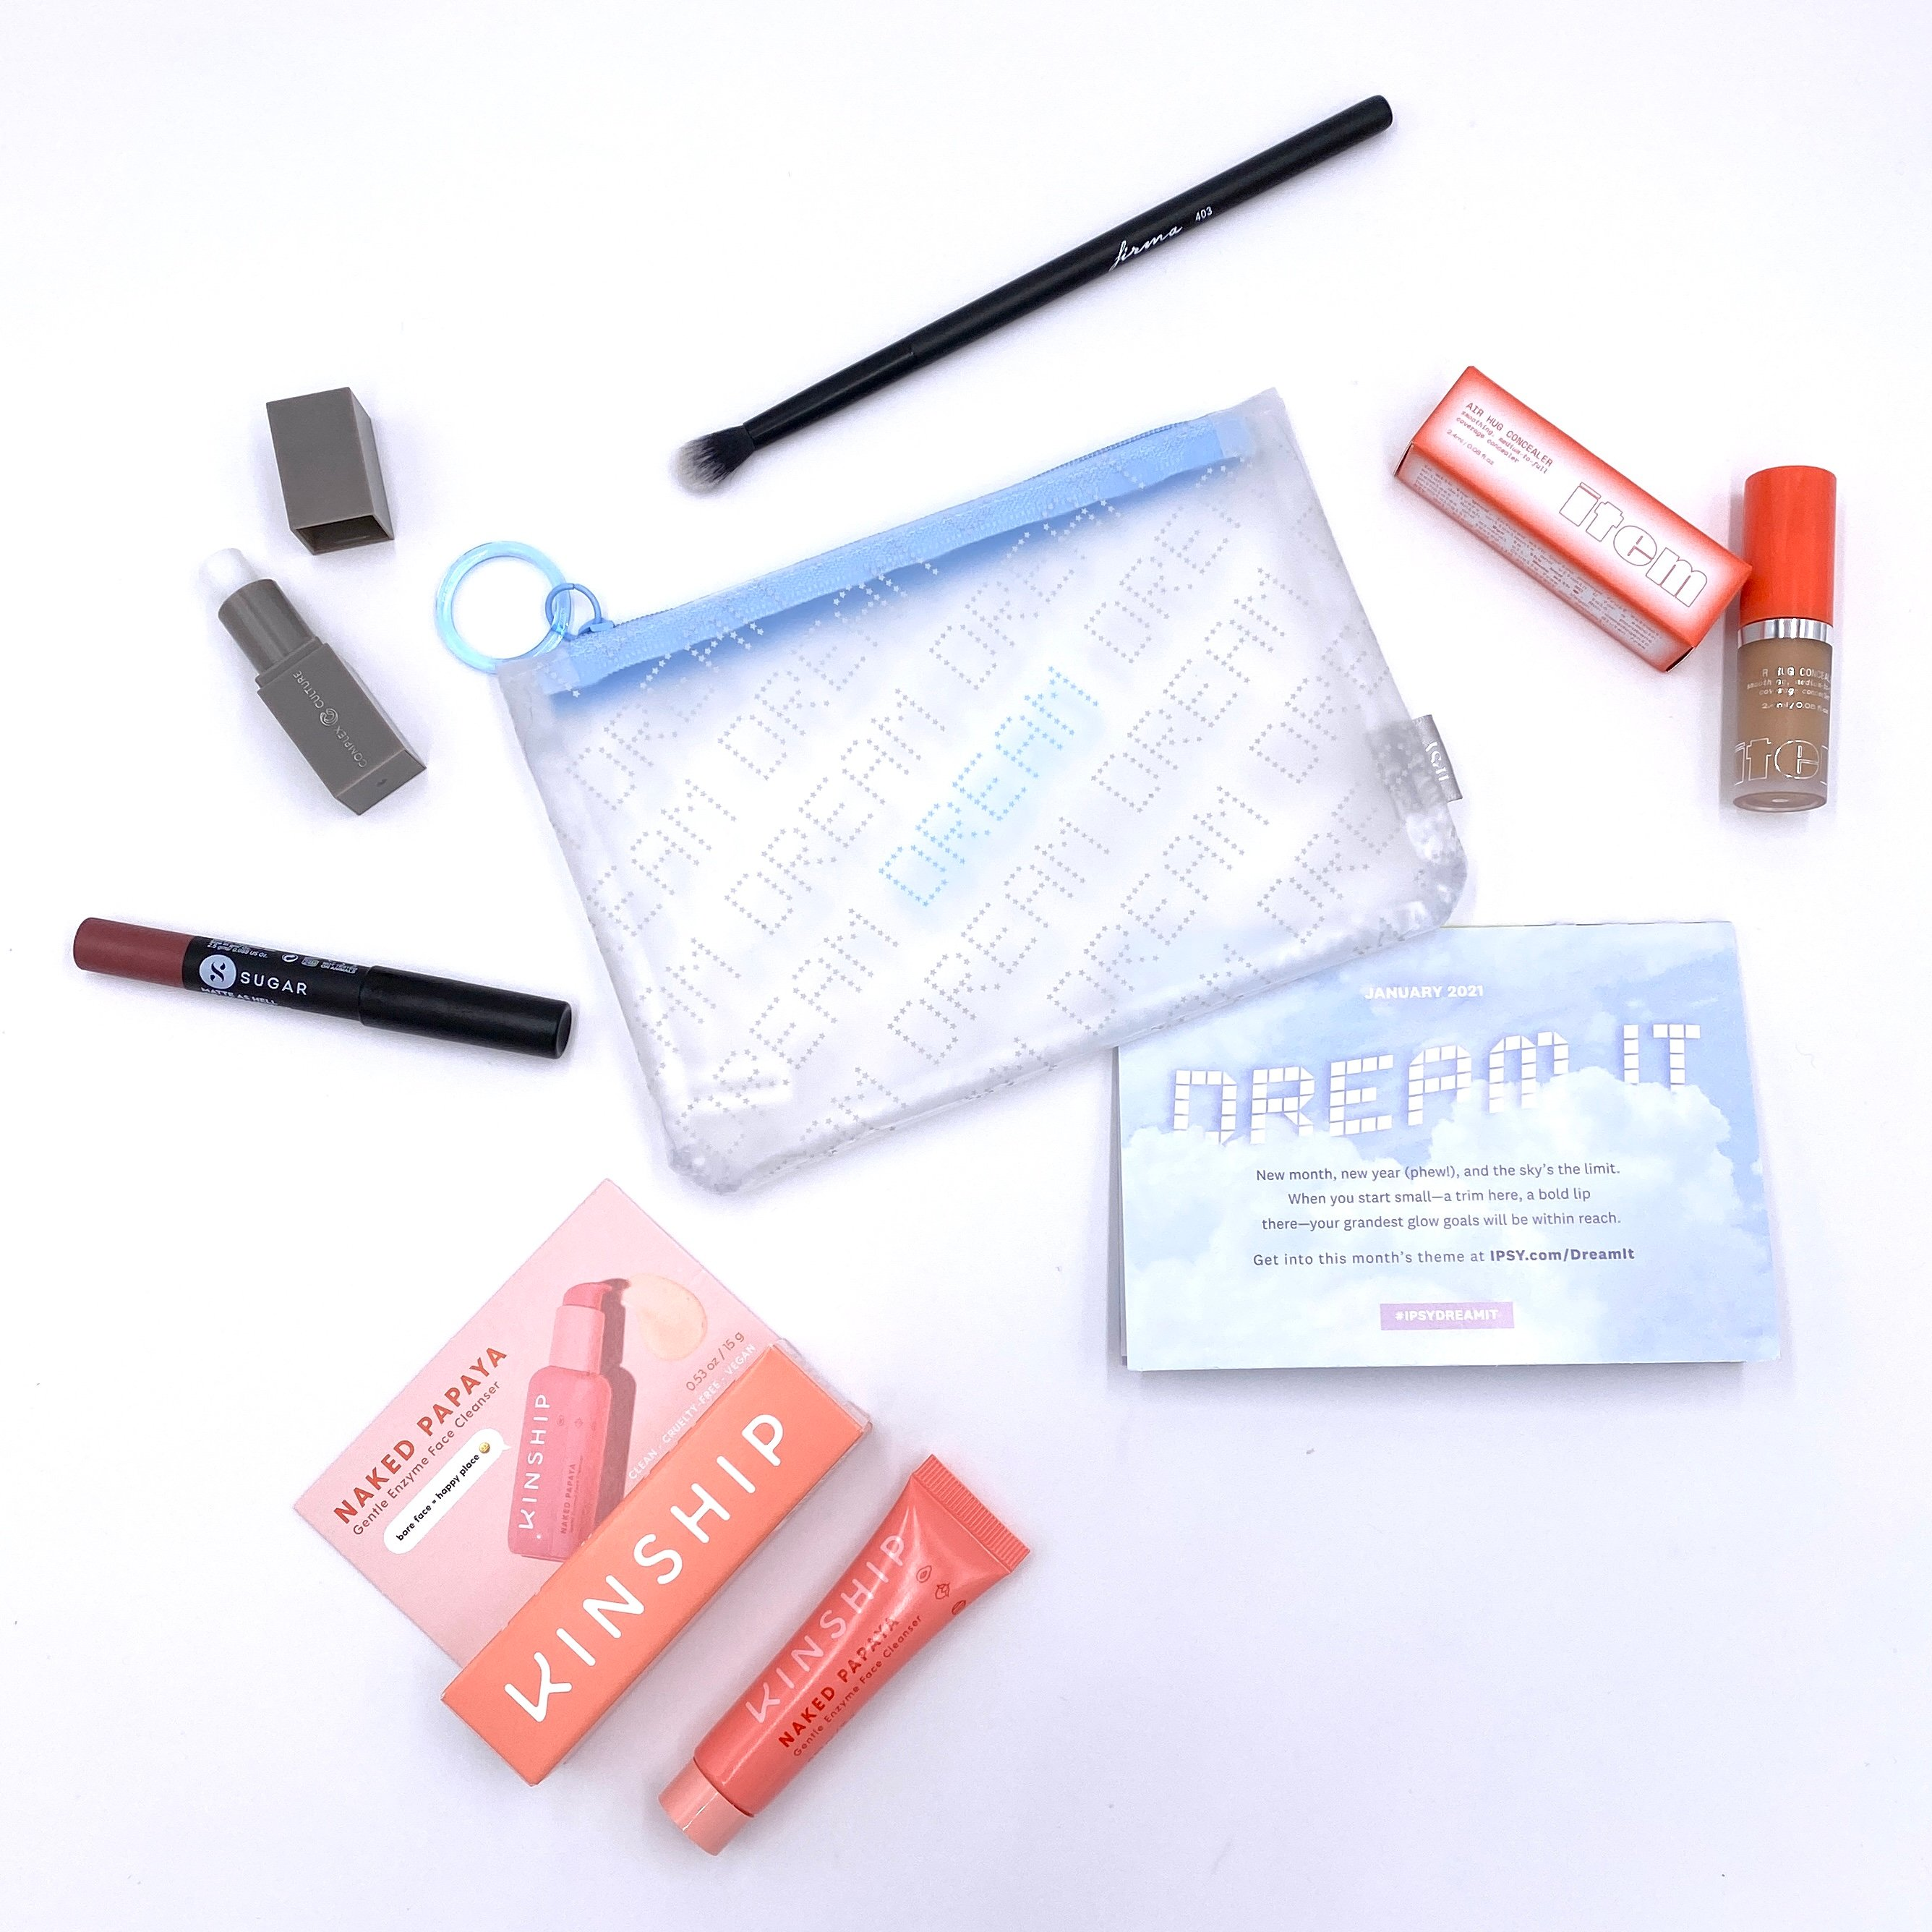 Ipsy January 2021 Review: Sugar Cosmetics, Item Beauty, and More!